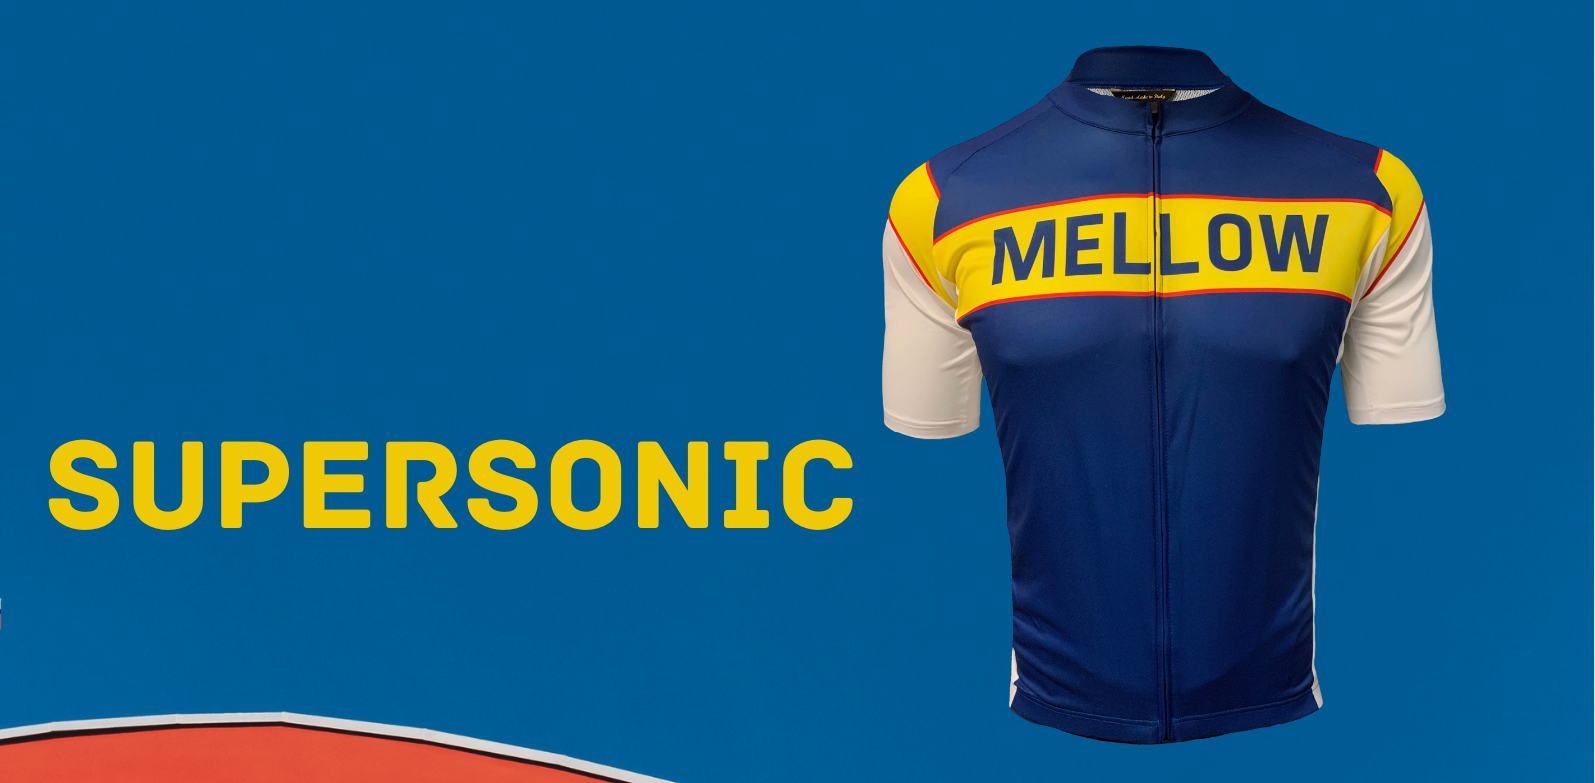 Retro Looks On Our Favorite Modern Jersey